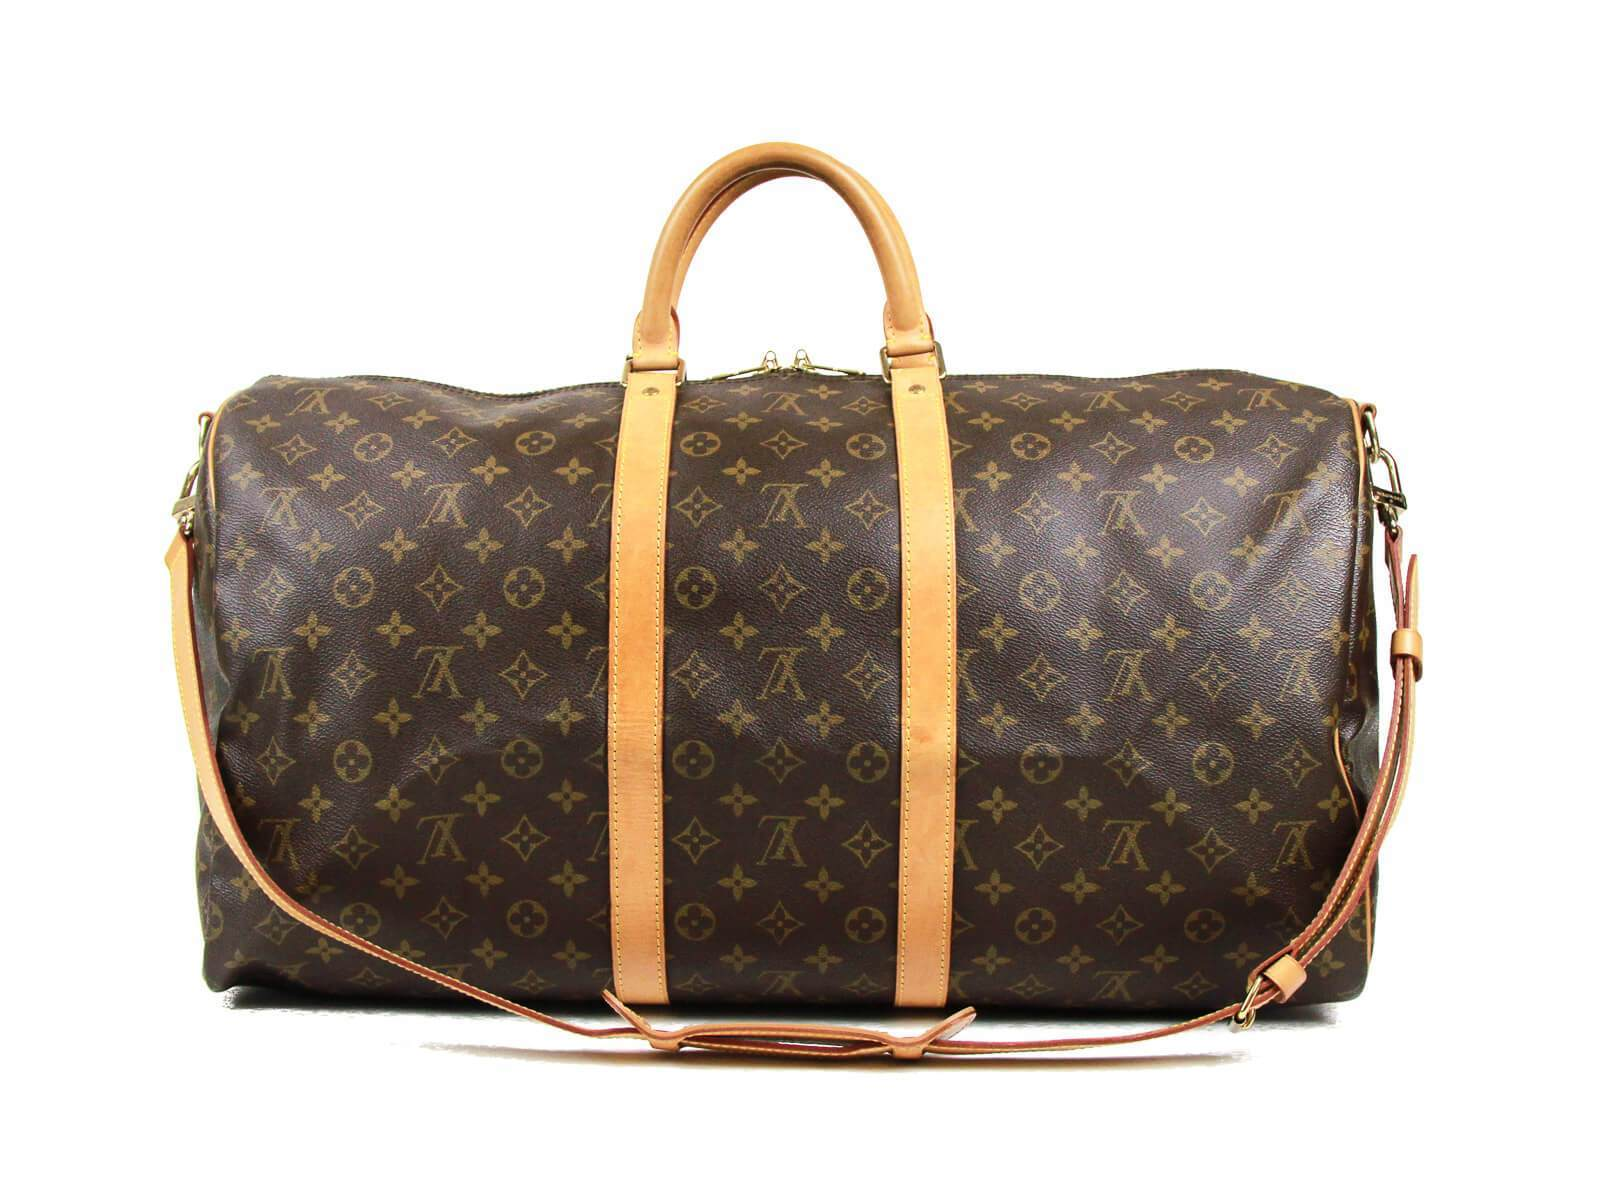 1ddc954495b4 Home › AUTHENTIC LOUIS VUITTON MONOGRAM LEATHER KEEPALL BANDOULIERE 55  M41414. SOLD OUT IMG 0261 1263b808-c7c0-4c5b-a740-f09a7c306065.jpg